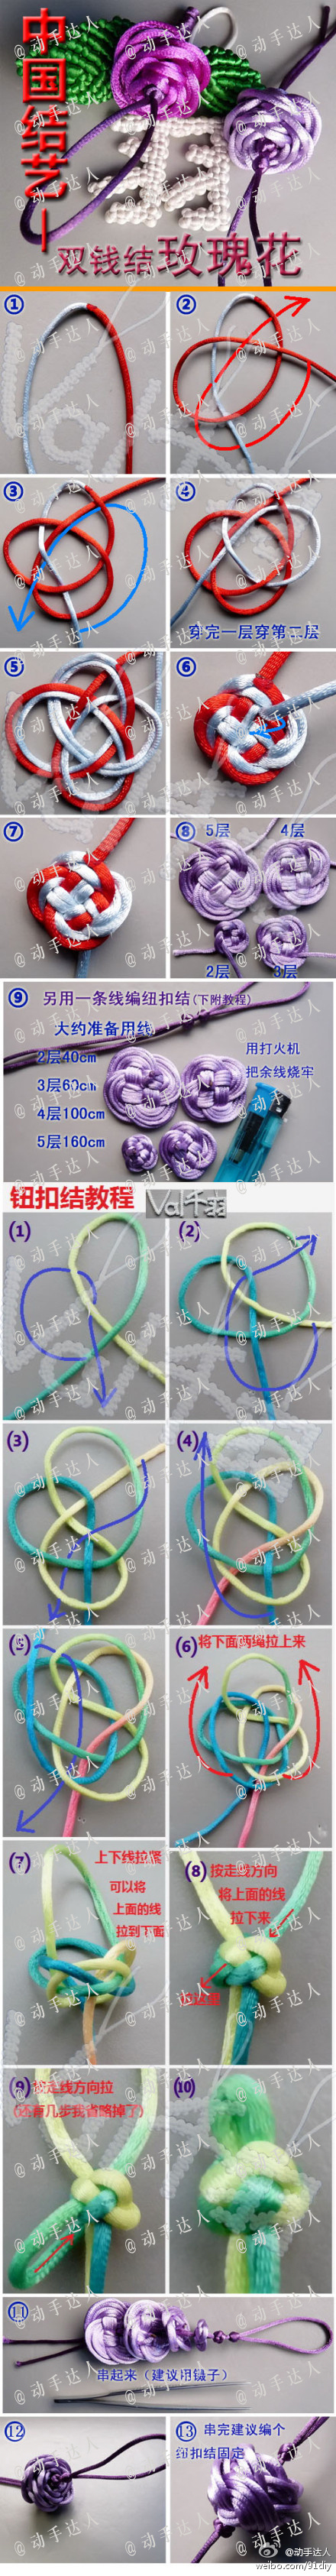 """Not sure if this will """"translate"""", and I 'think' credit goes to """"duitang.com""""...  Cool series of pics for, Braiding? Weaving? Cord-Work? Hmmm...  Not sure what to 'title' this, but it looks like fun to me."""